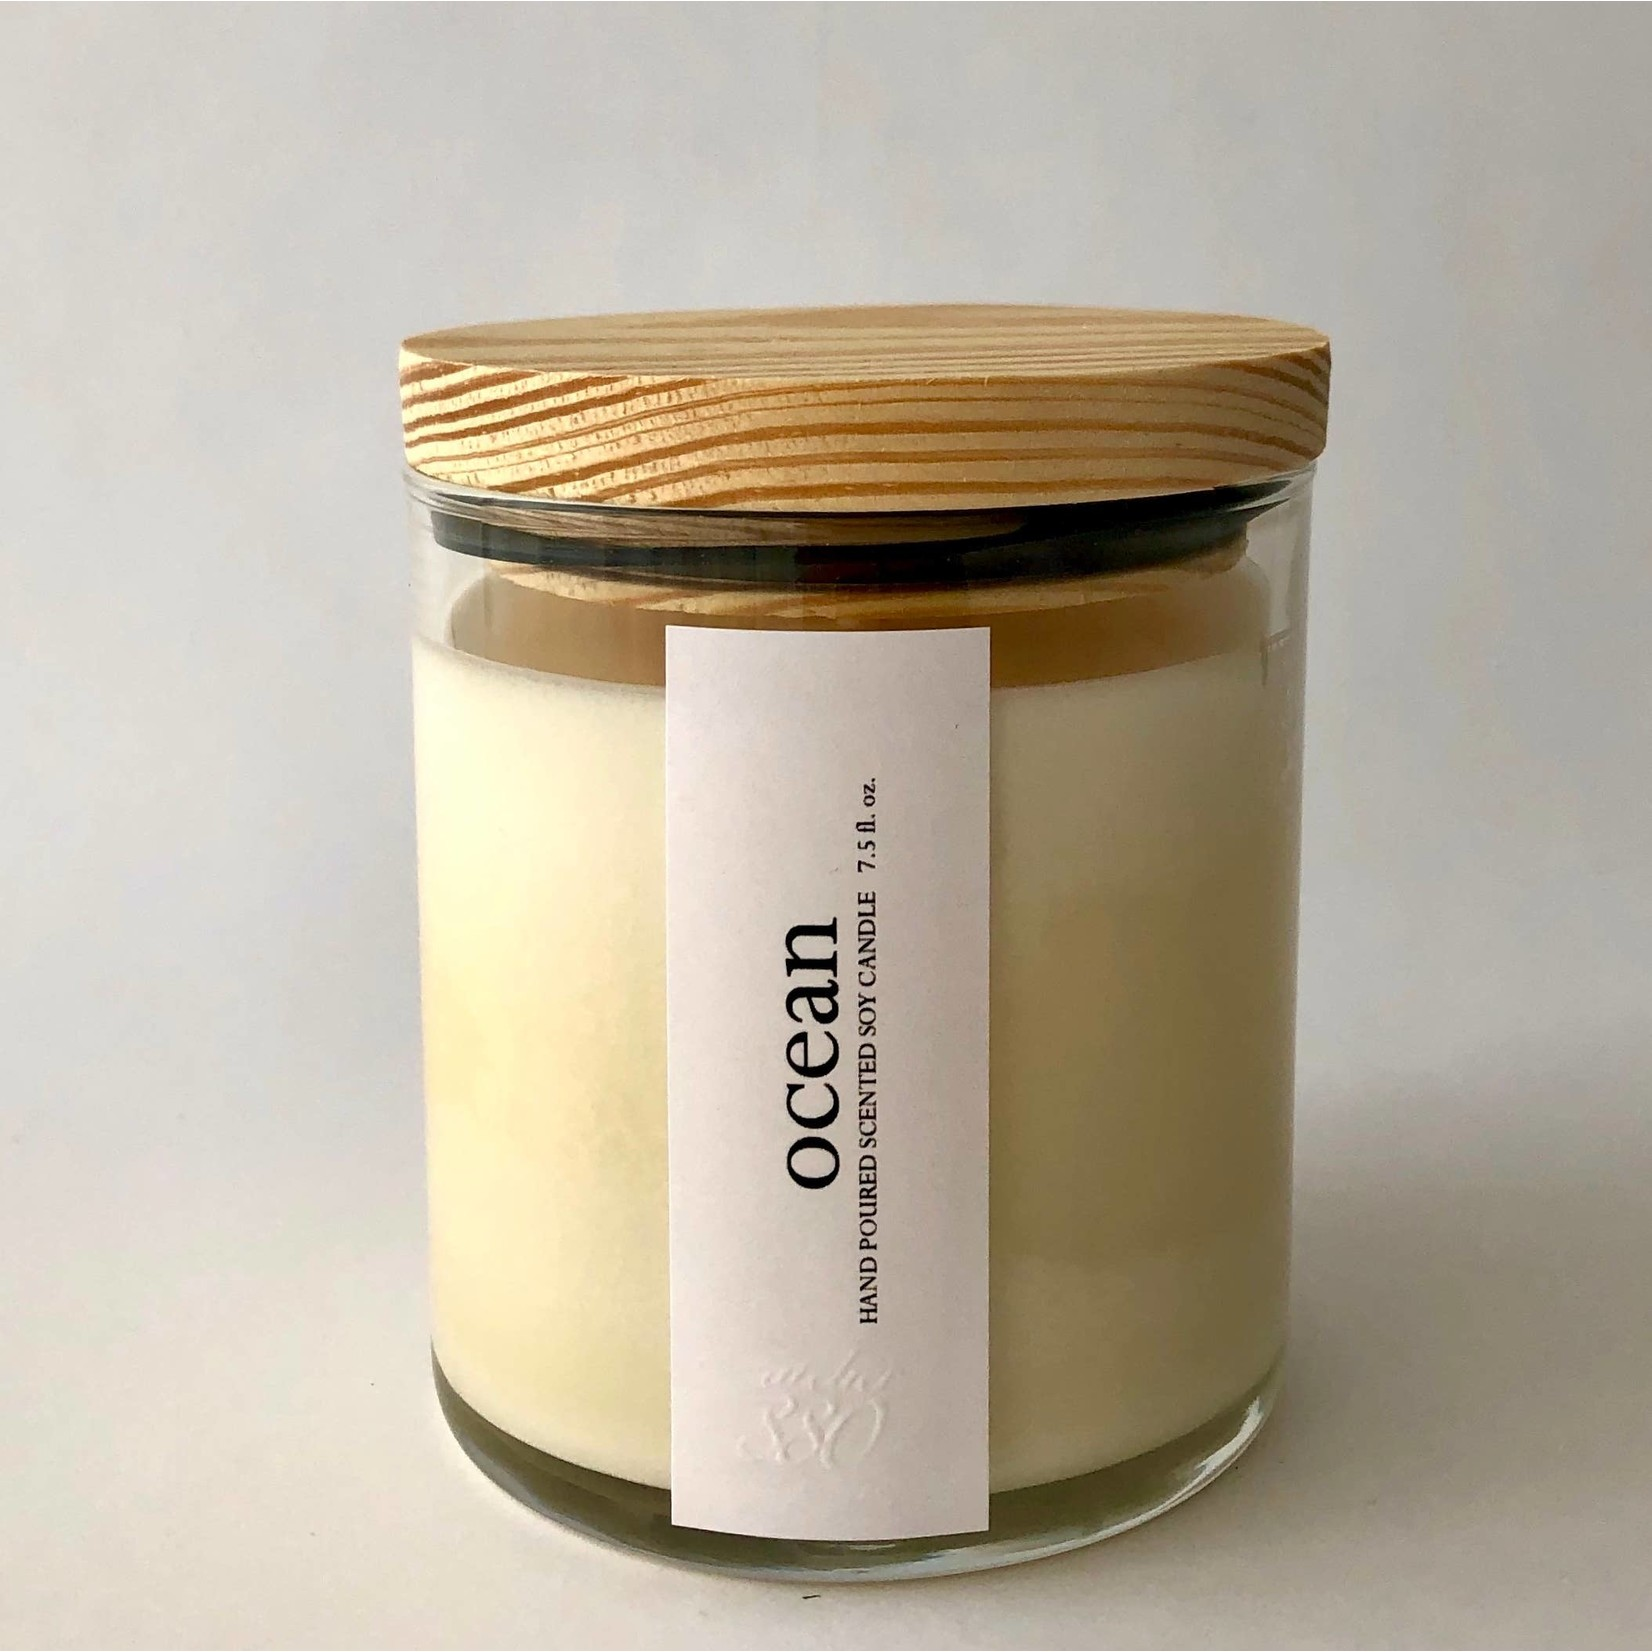 Atelier 880 Glass Scented Candles